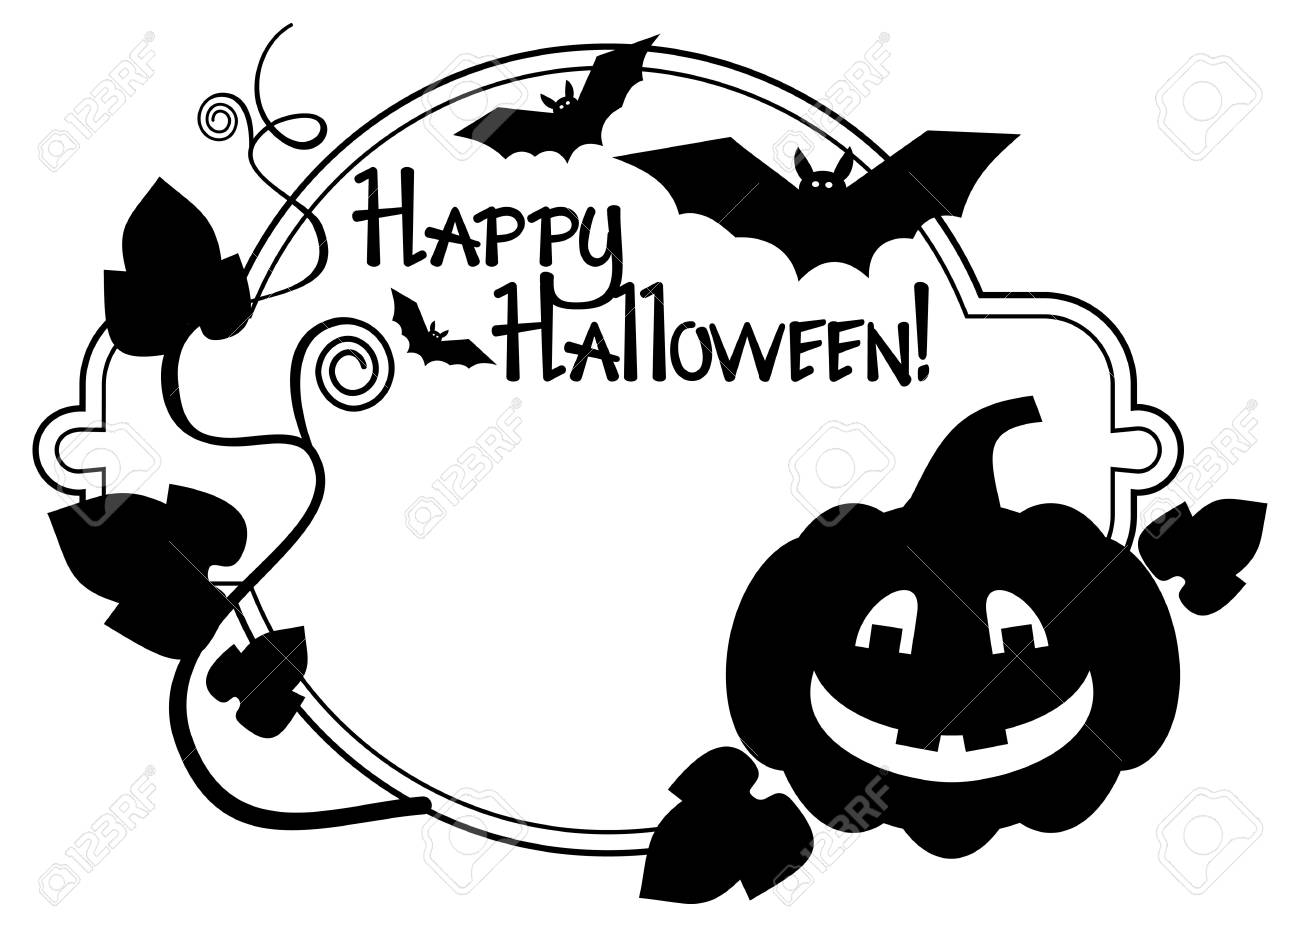 Halloween Vector Black And White.Black And White Frame With Halloween Pumpkin And Text